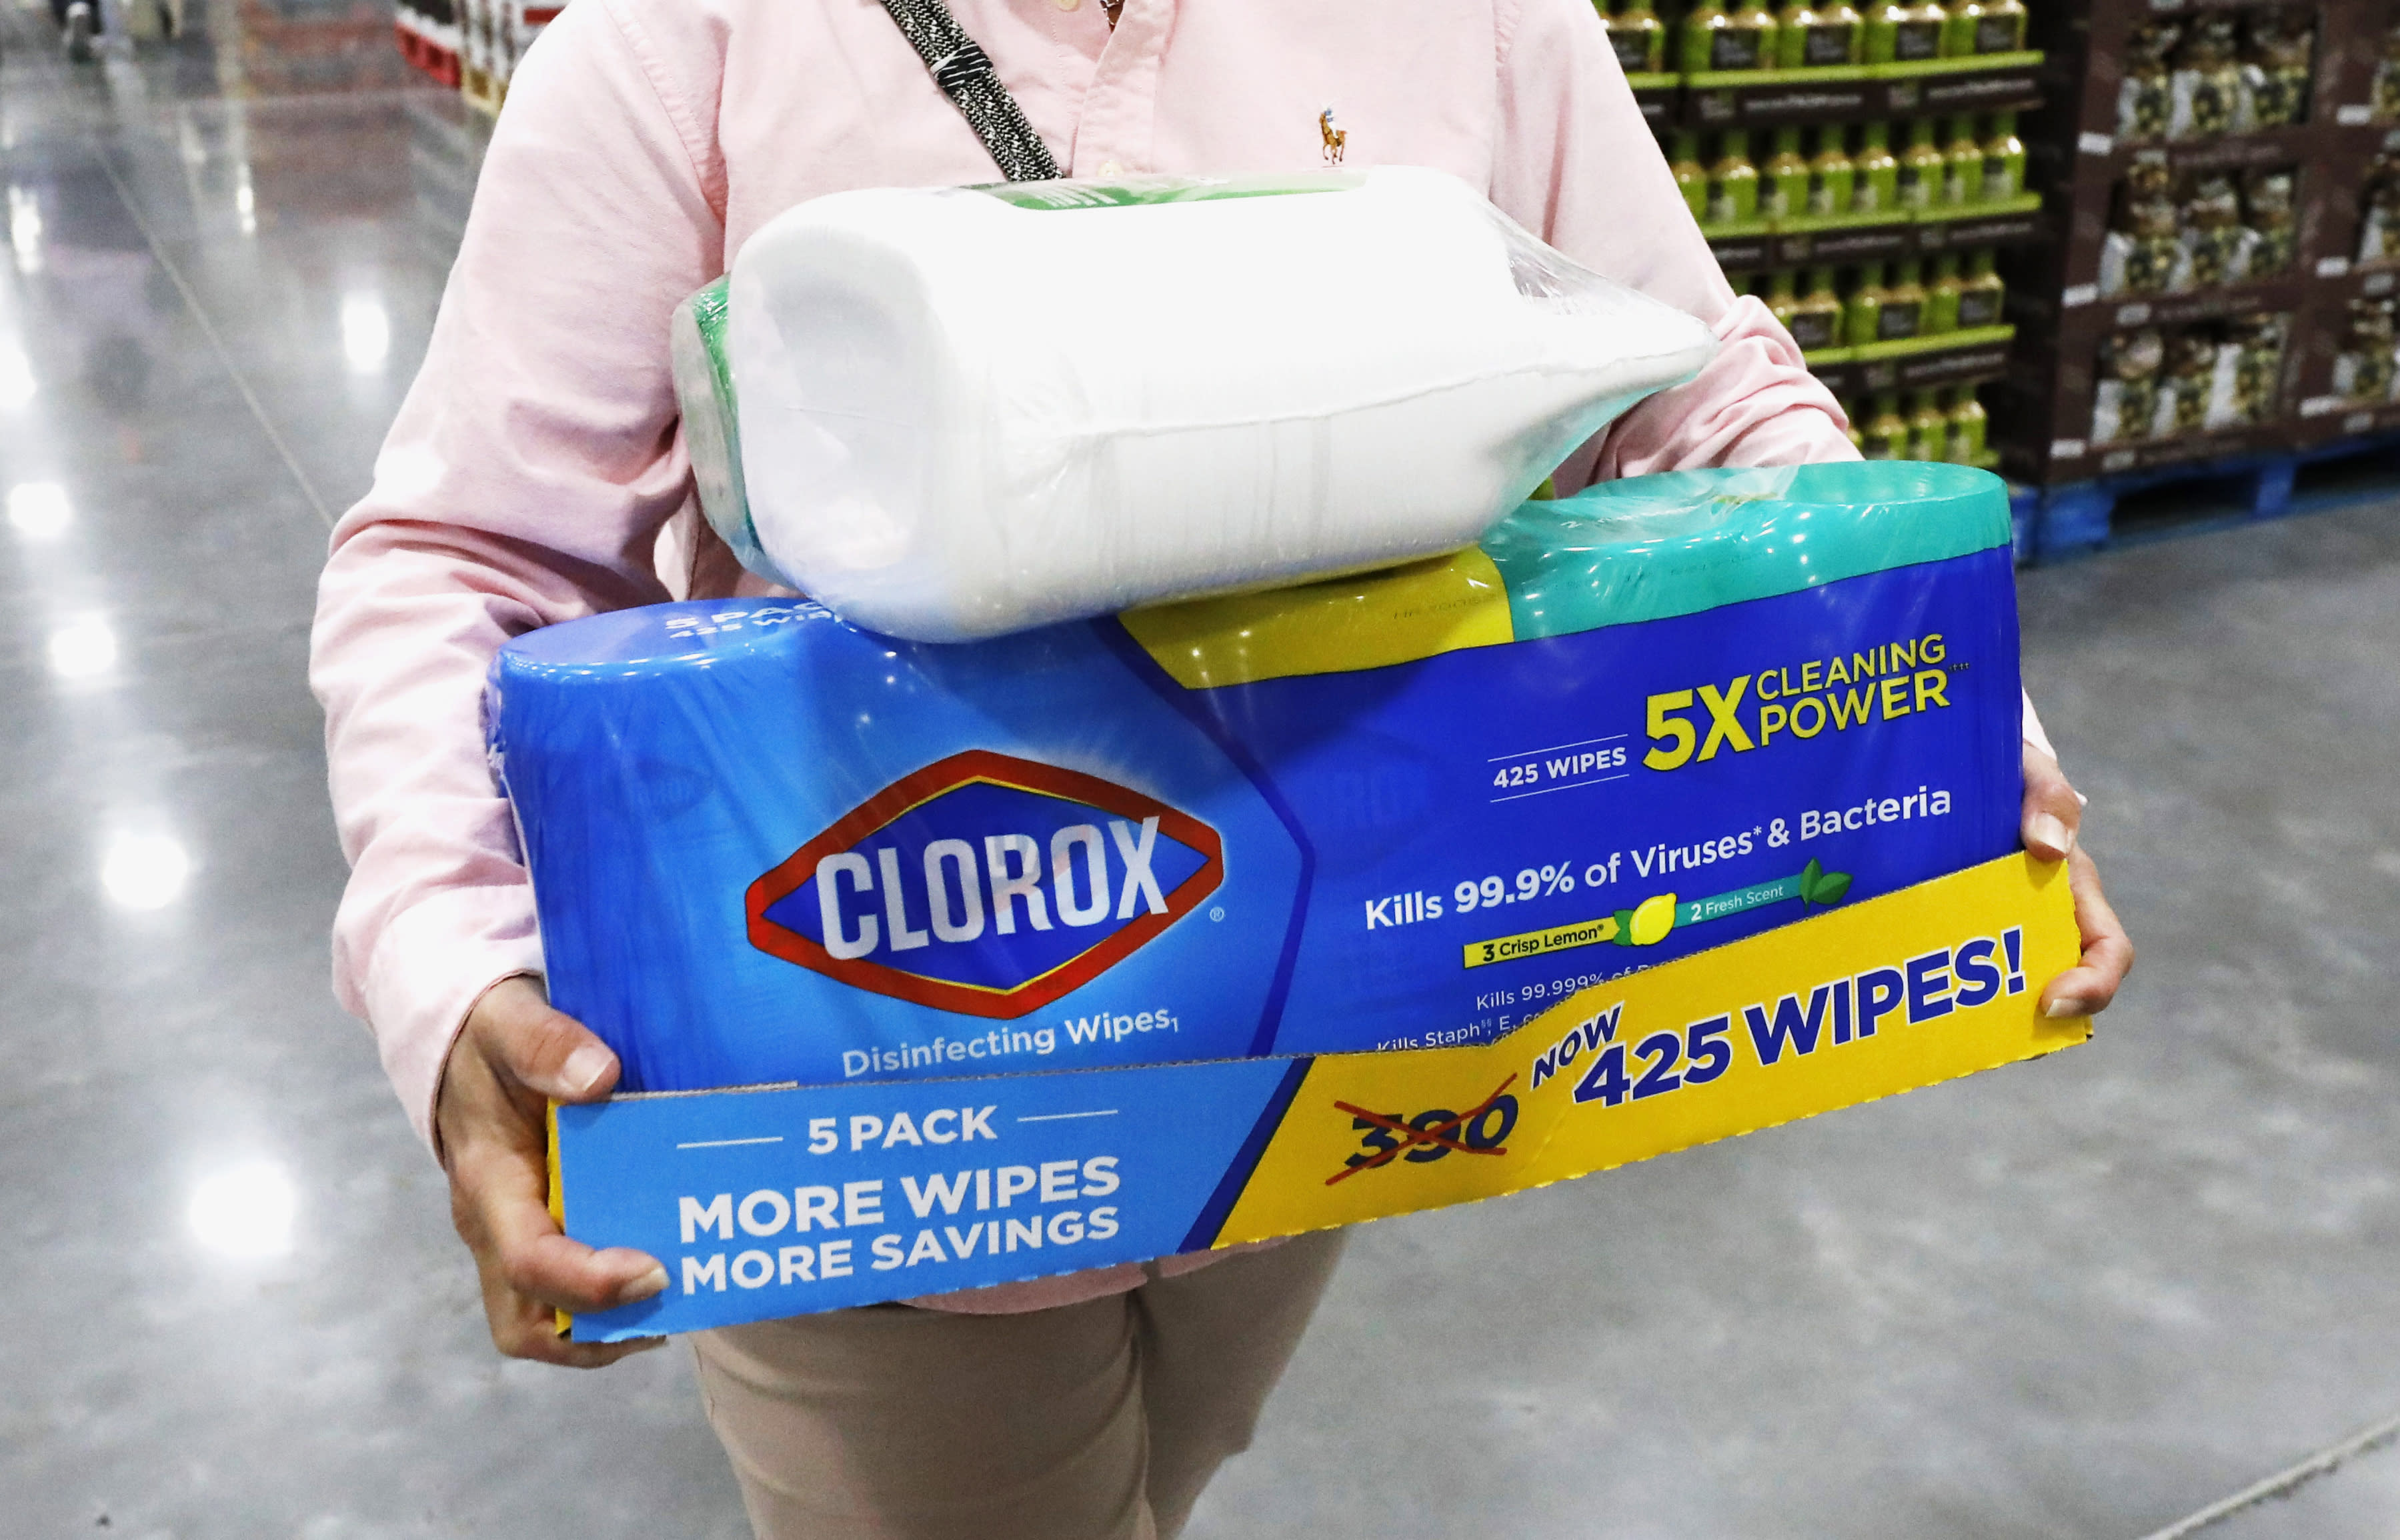 Poison control calls for cleansers, disinfectants up 20% during pandemic